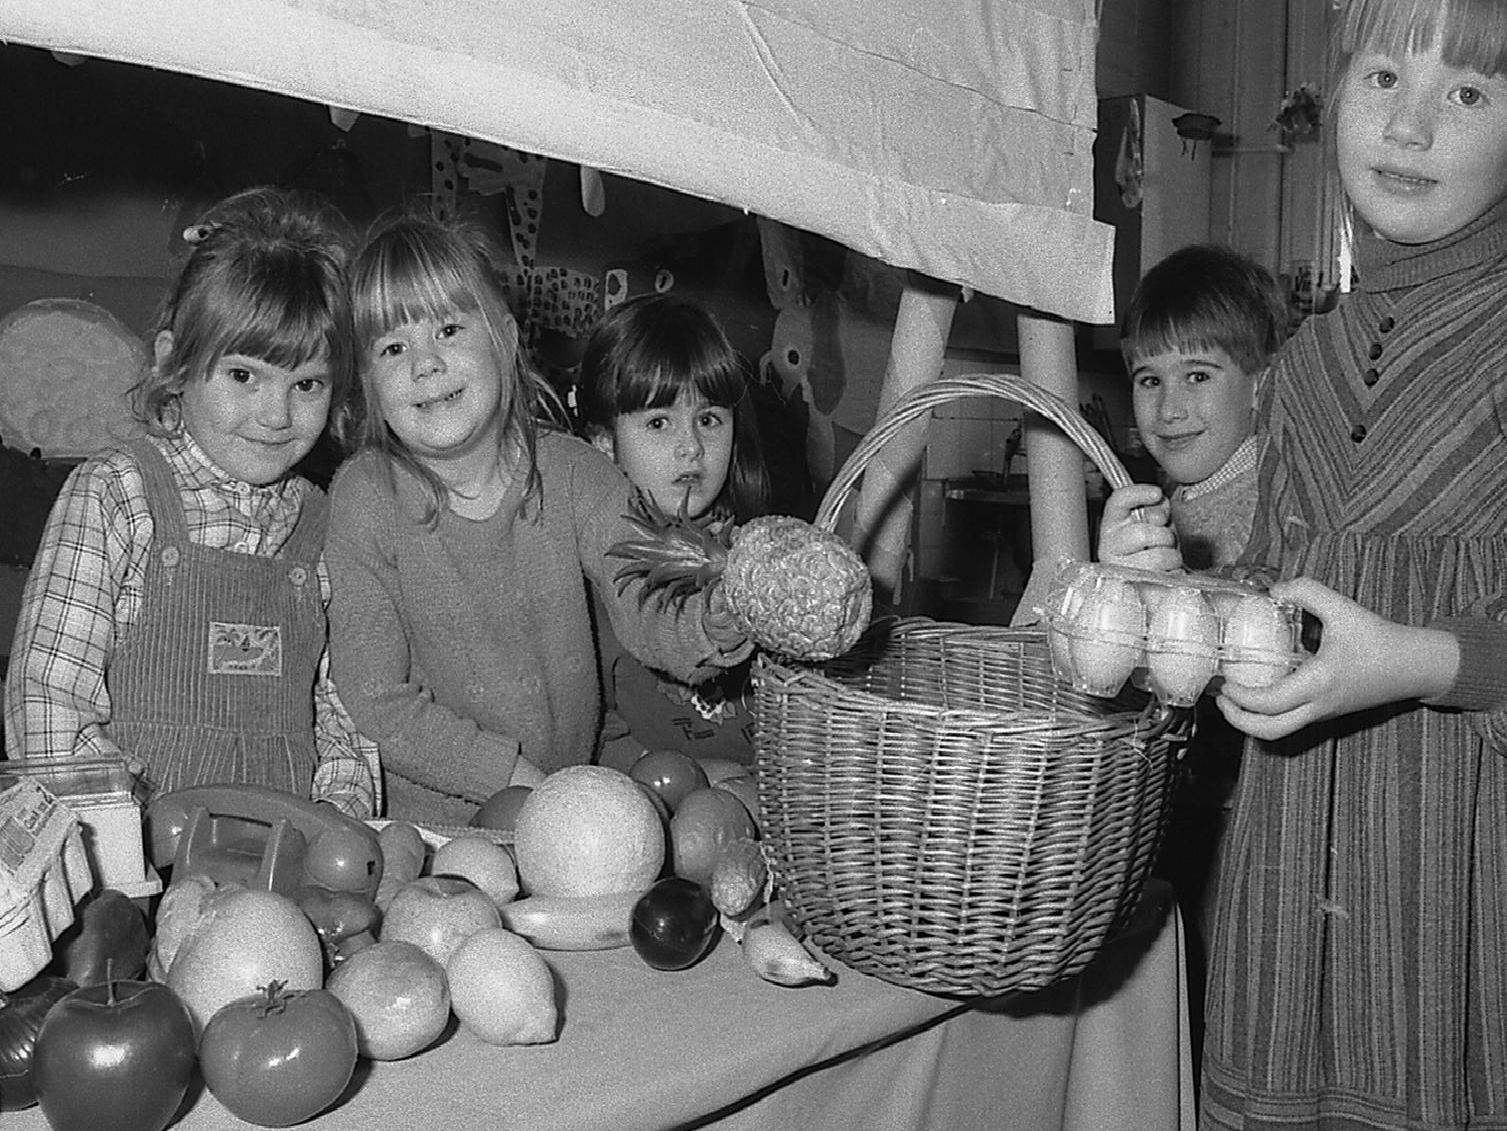 1989: These children are having fun at an open day at Sutton Road School in Mansfield. Did you go to this school?